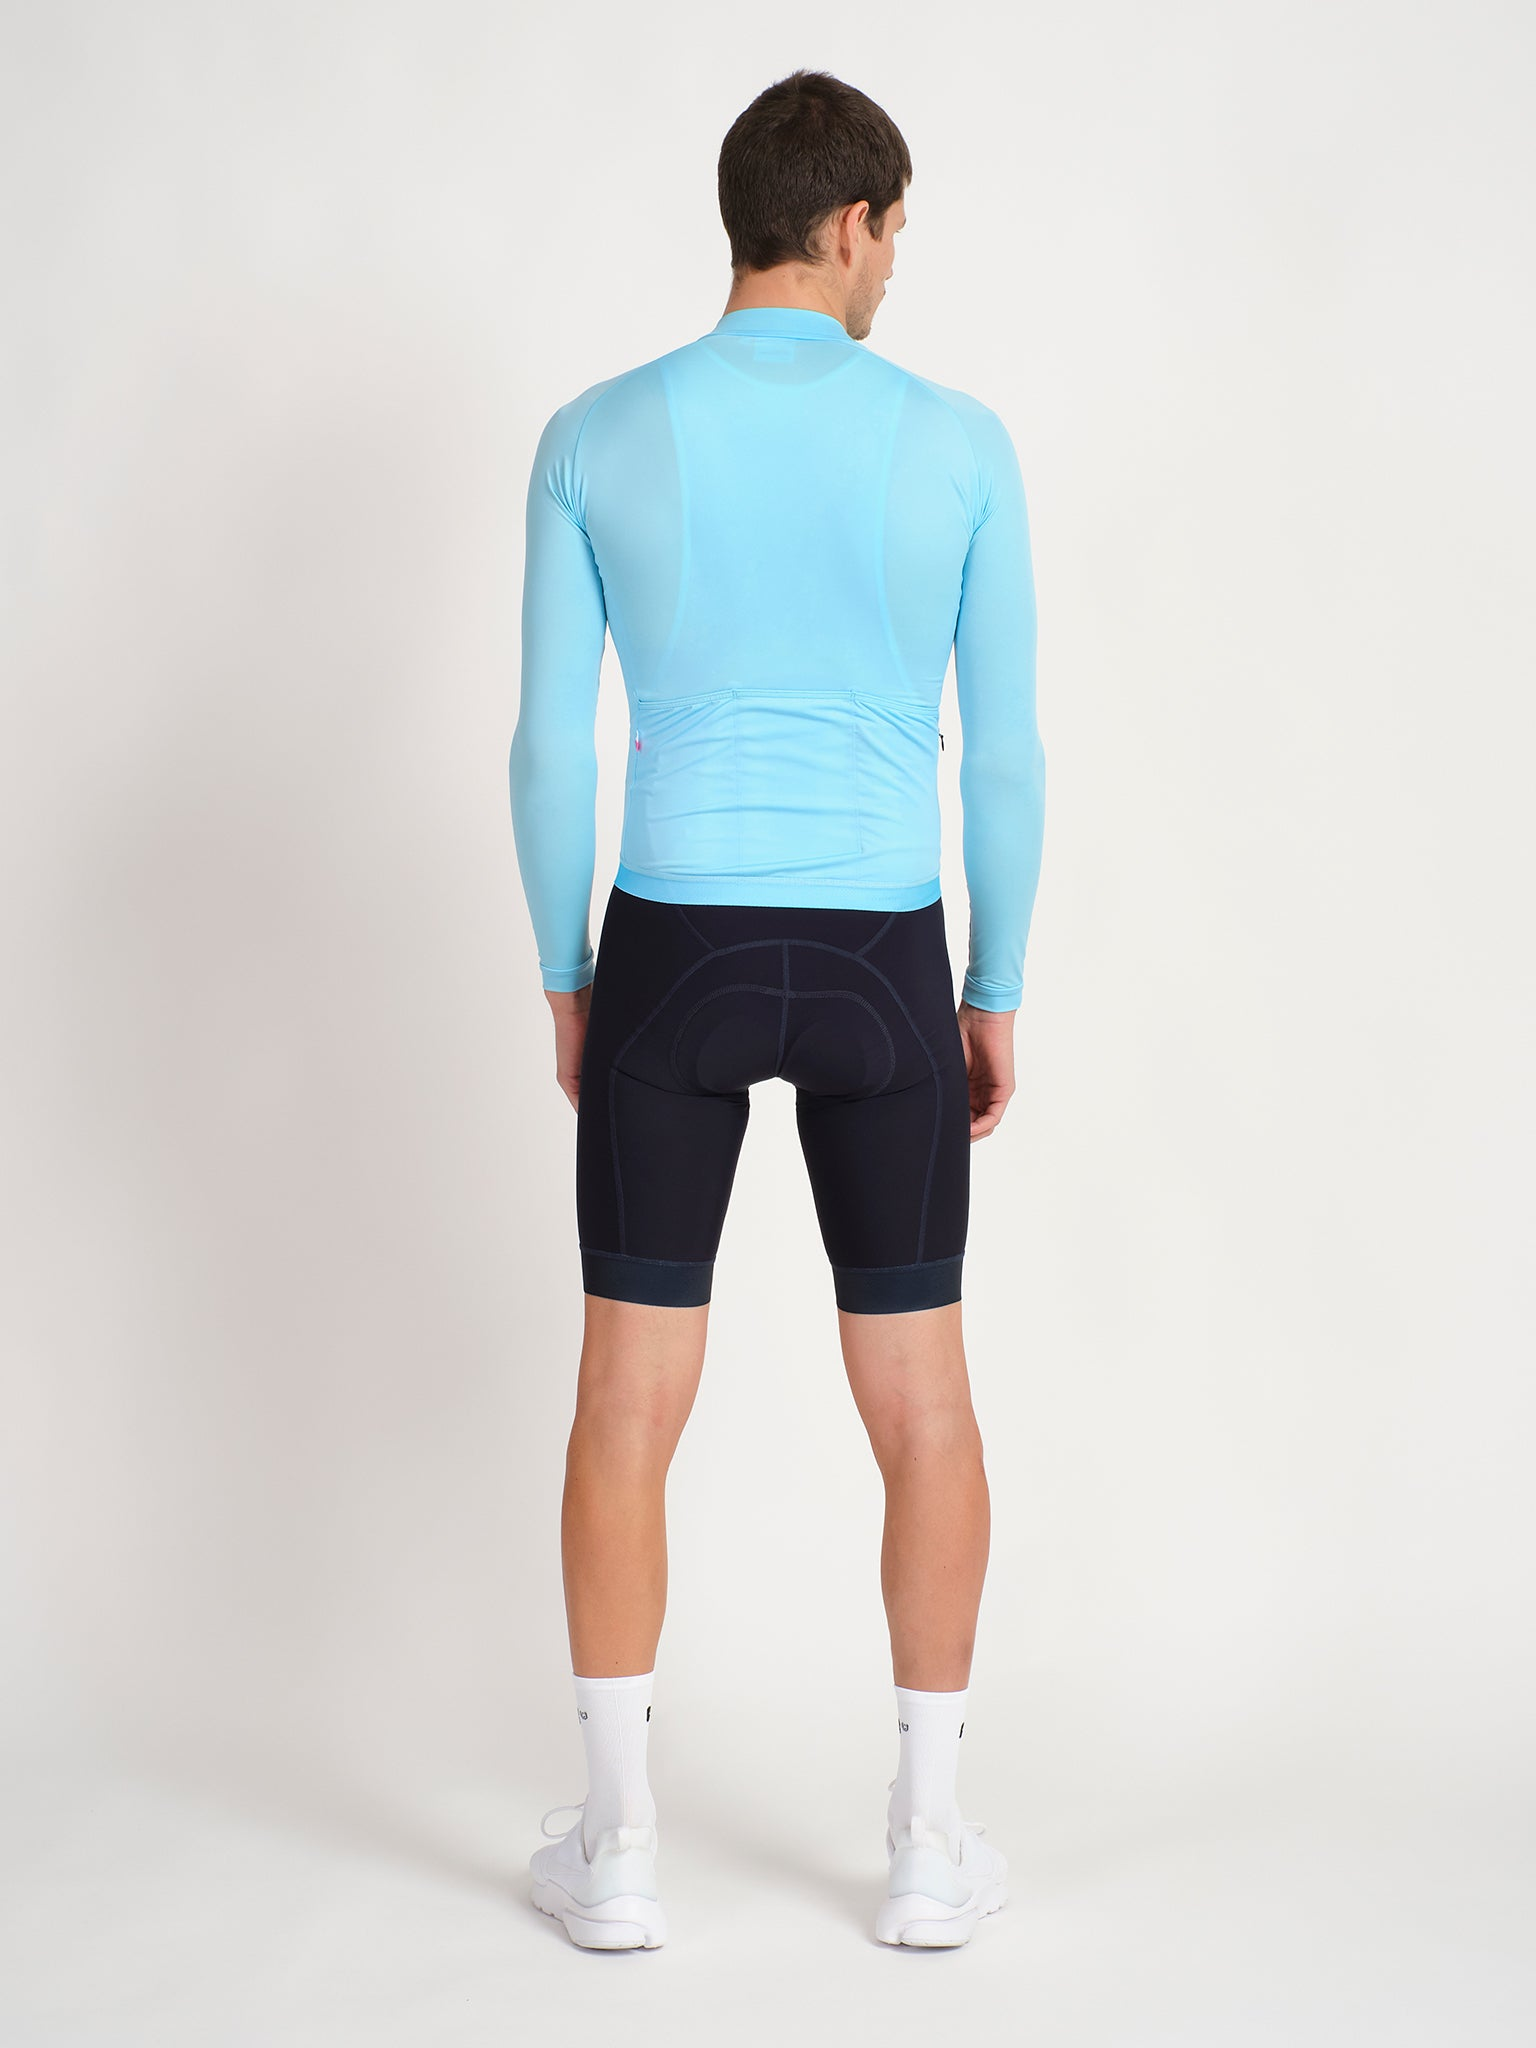 Everyday Longsleeve Jersey Light Blue